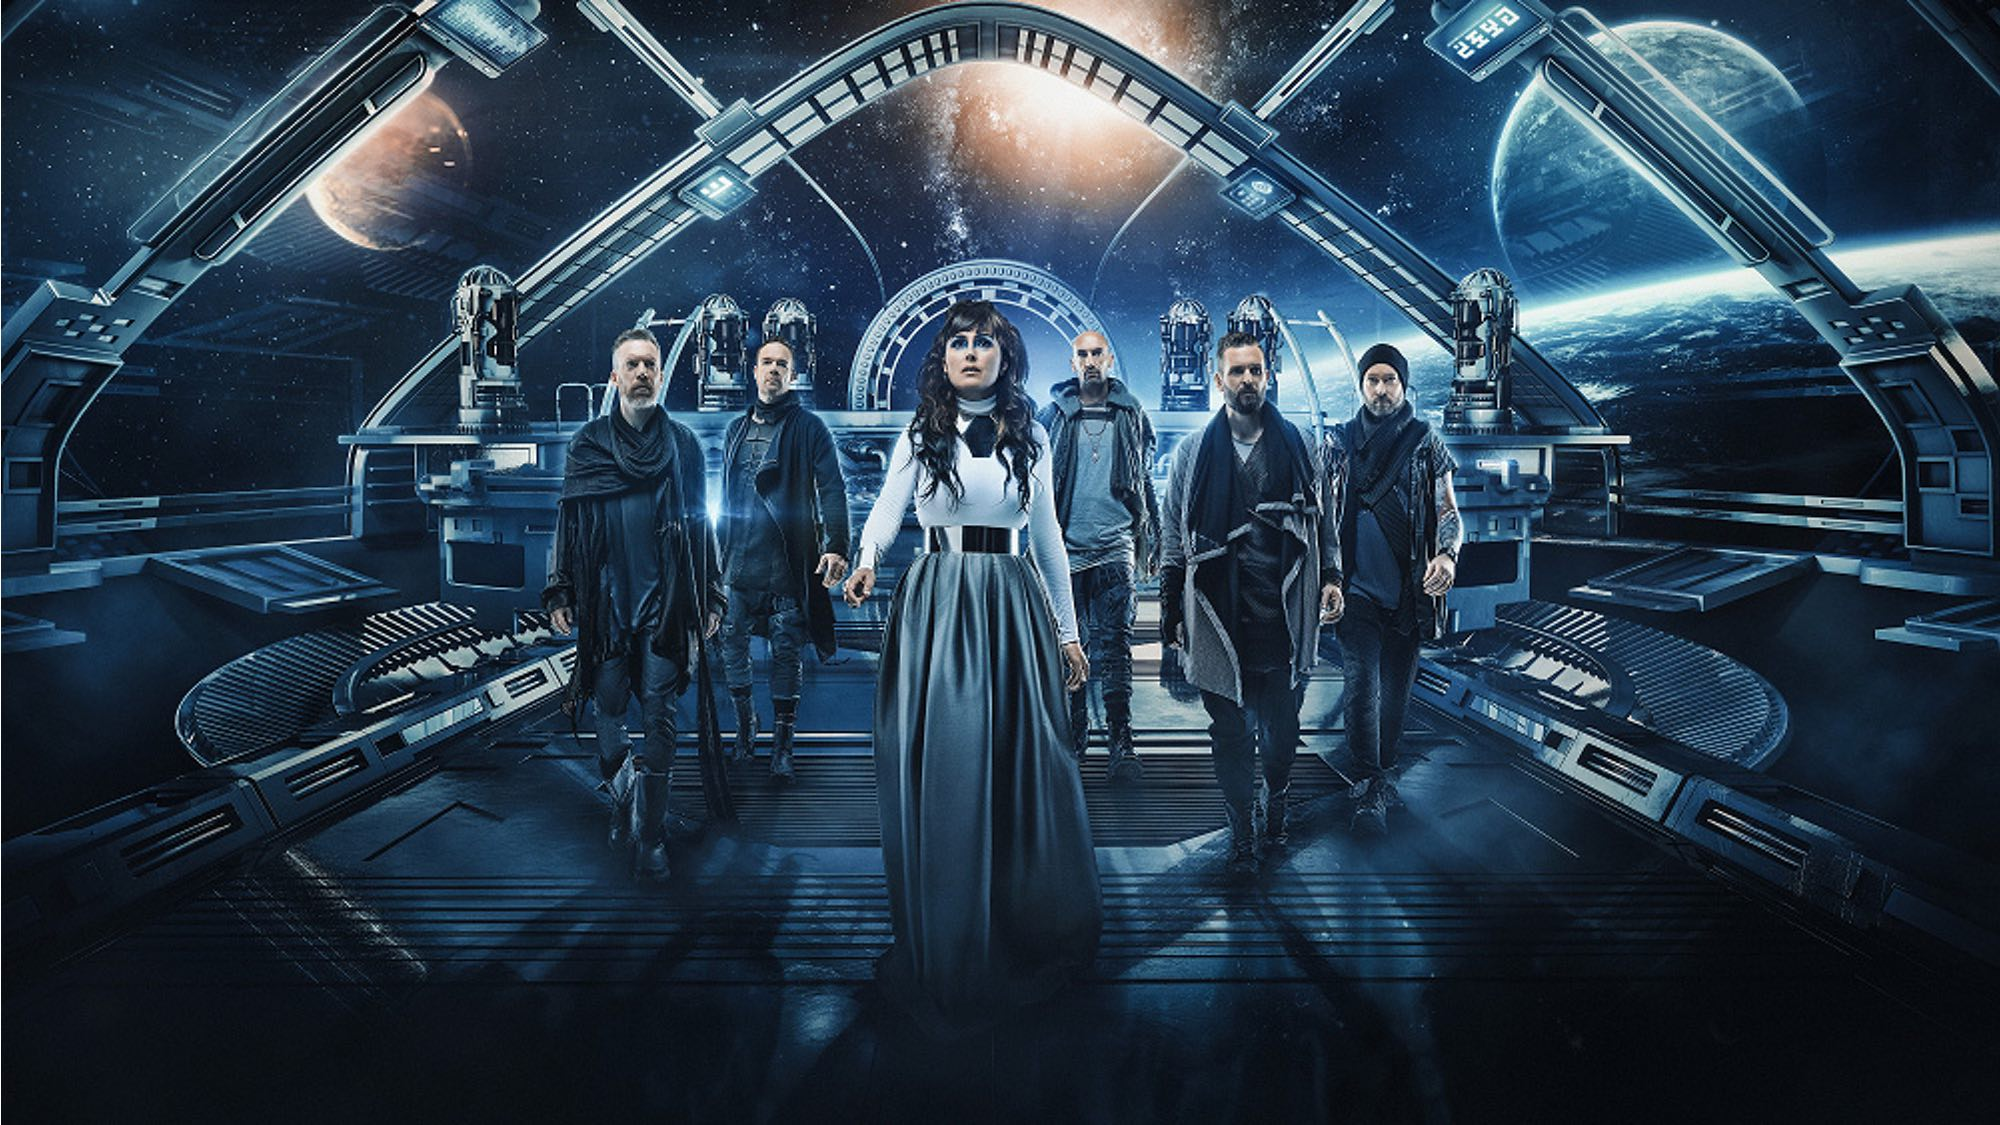 Russia Within Temptation RESIST Live Star Wars photo 2018